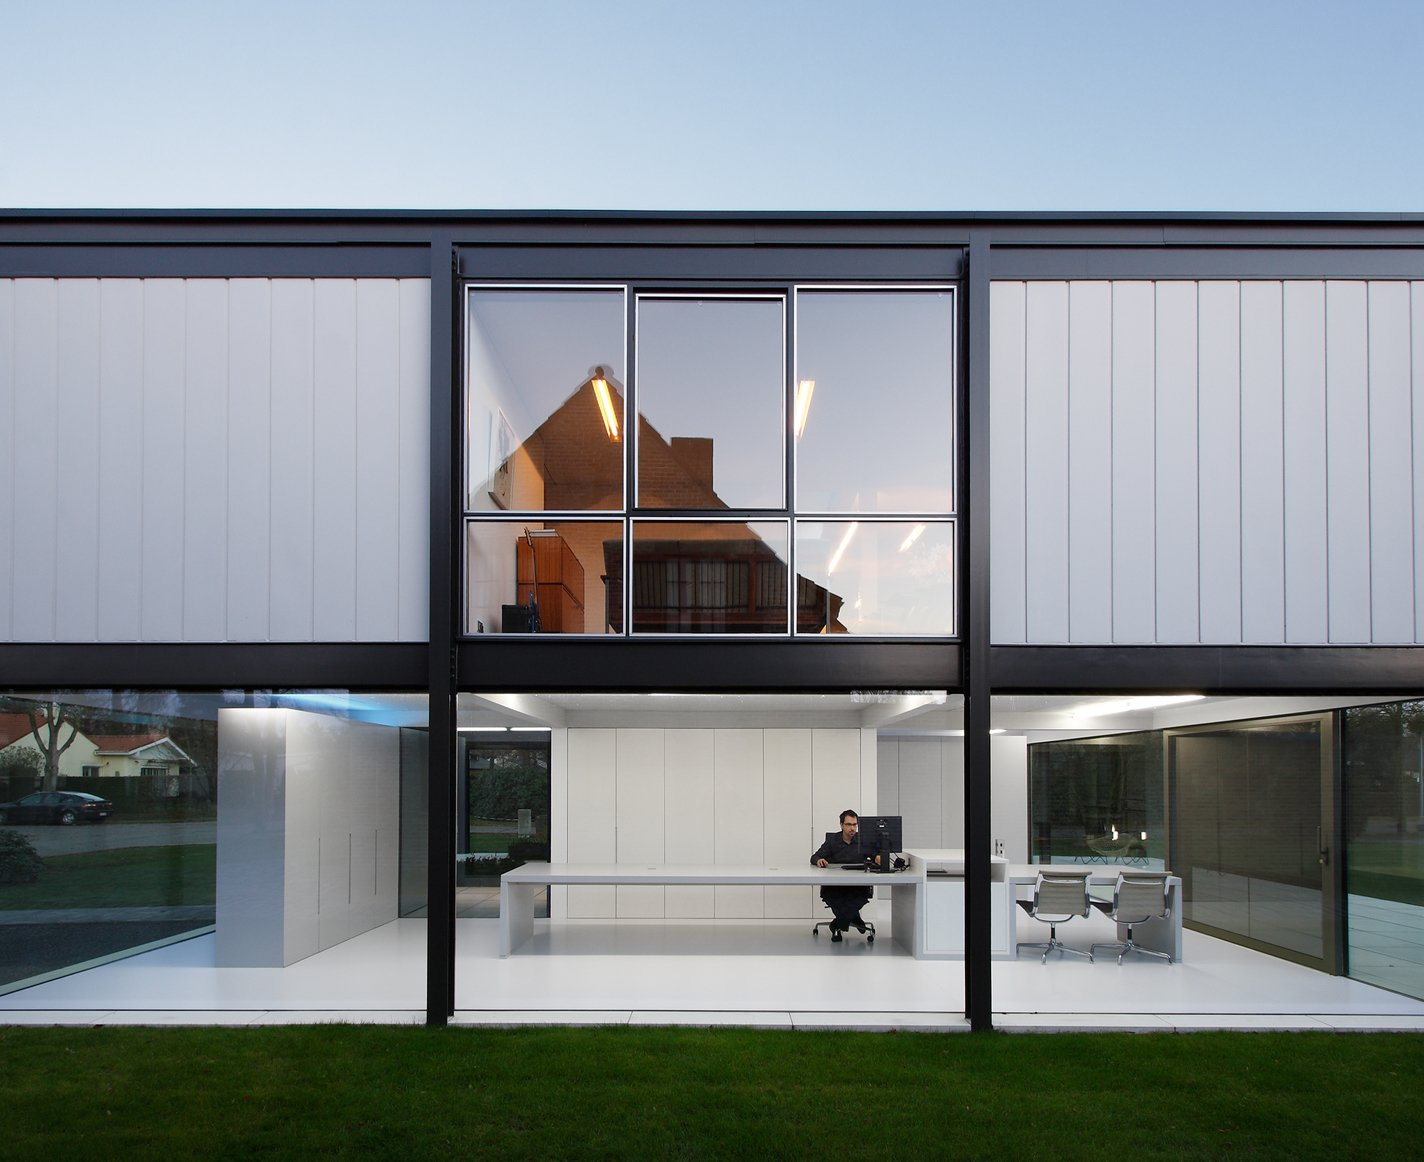 A Fantastic Renovation in Belgium Rescues a Bauhaus-Inspired Home